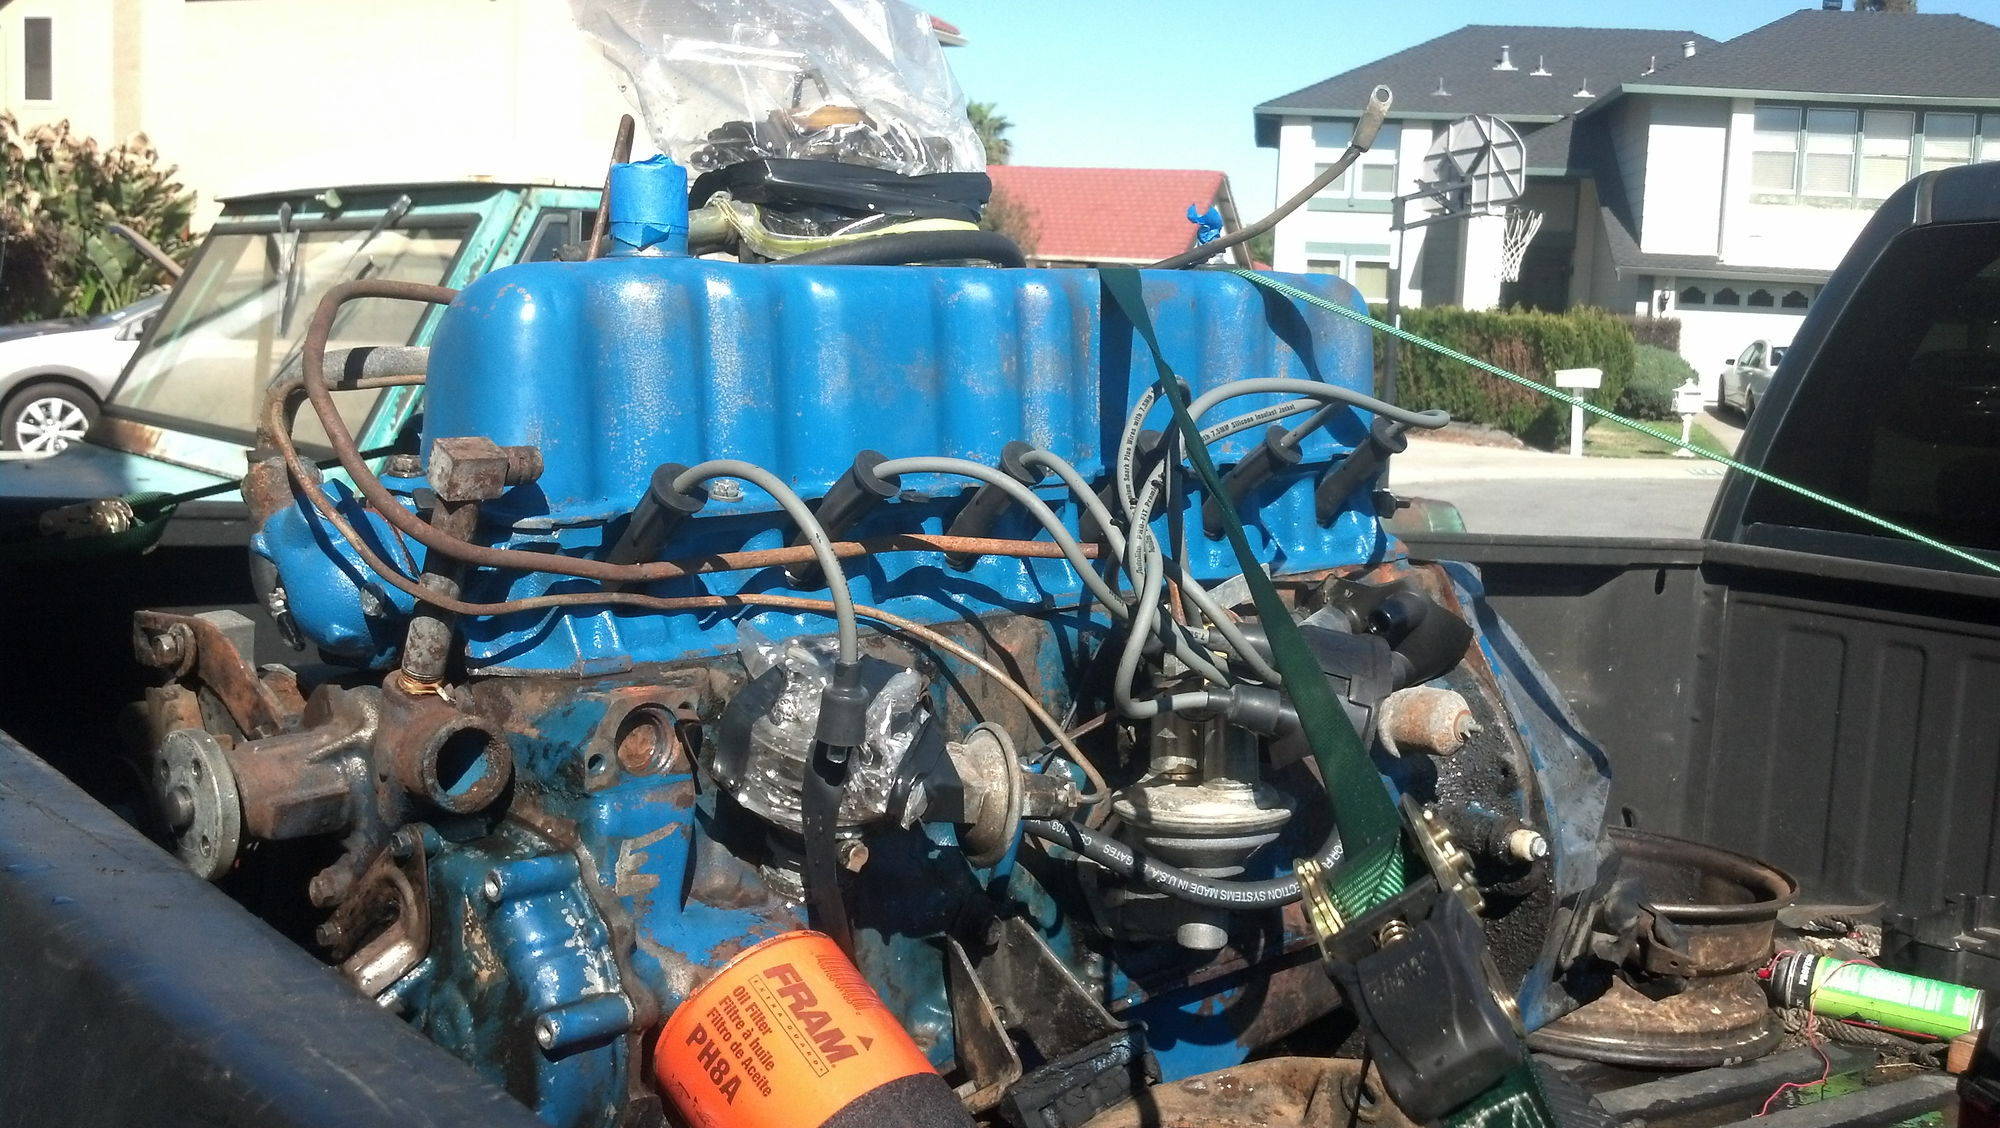 Craigslist trucks louisiana - Craigslist 200 Engine Concerns